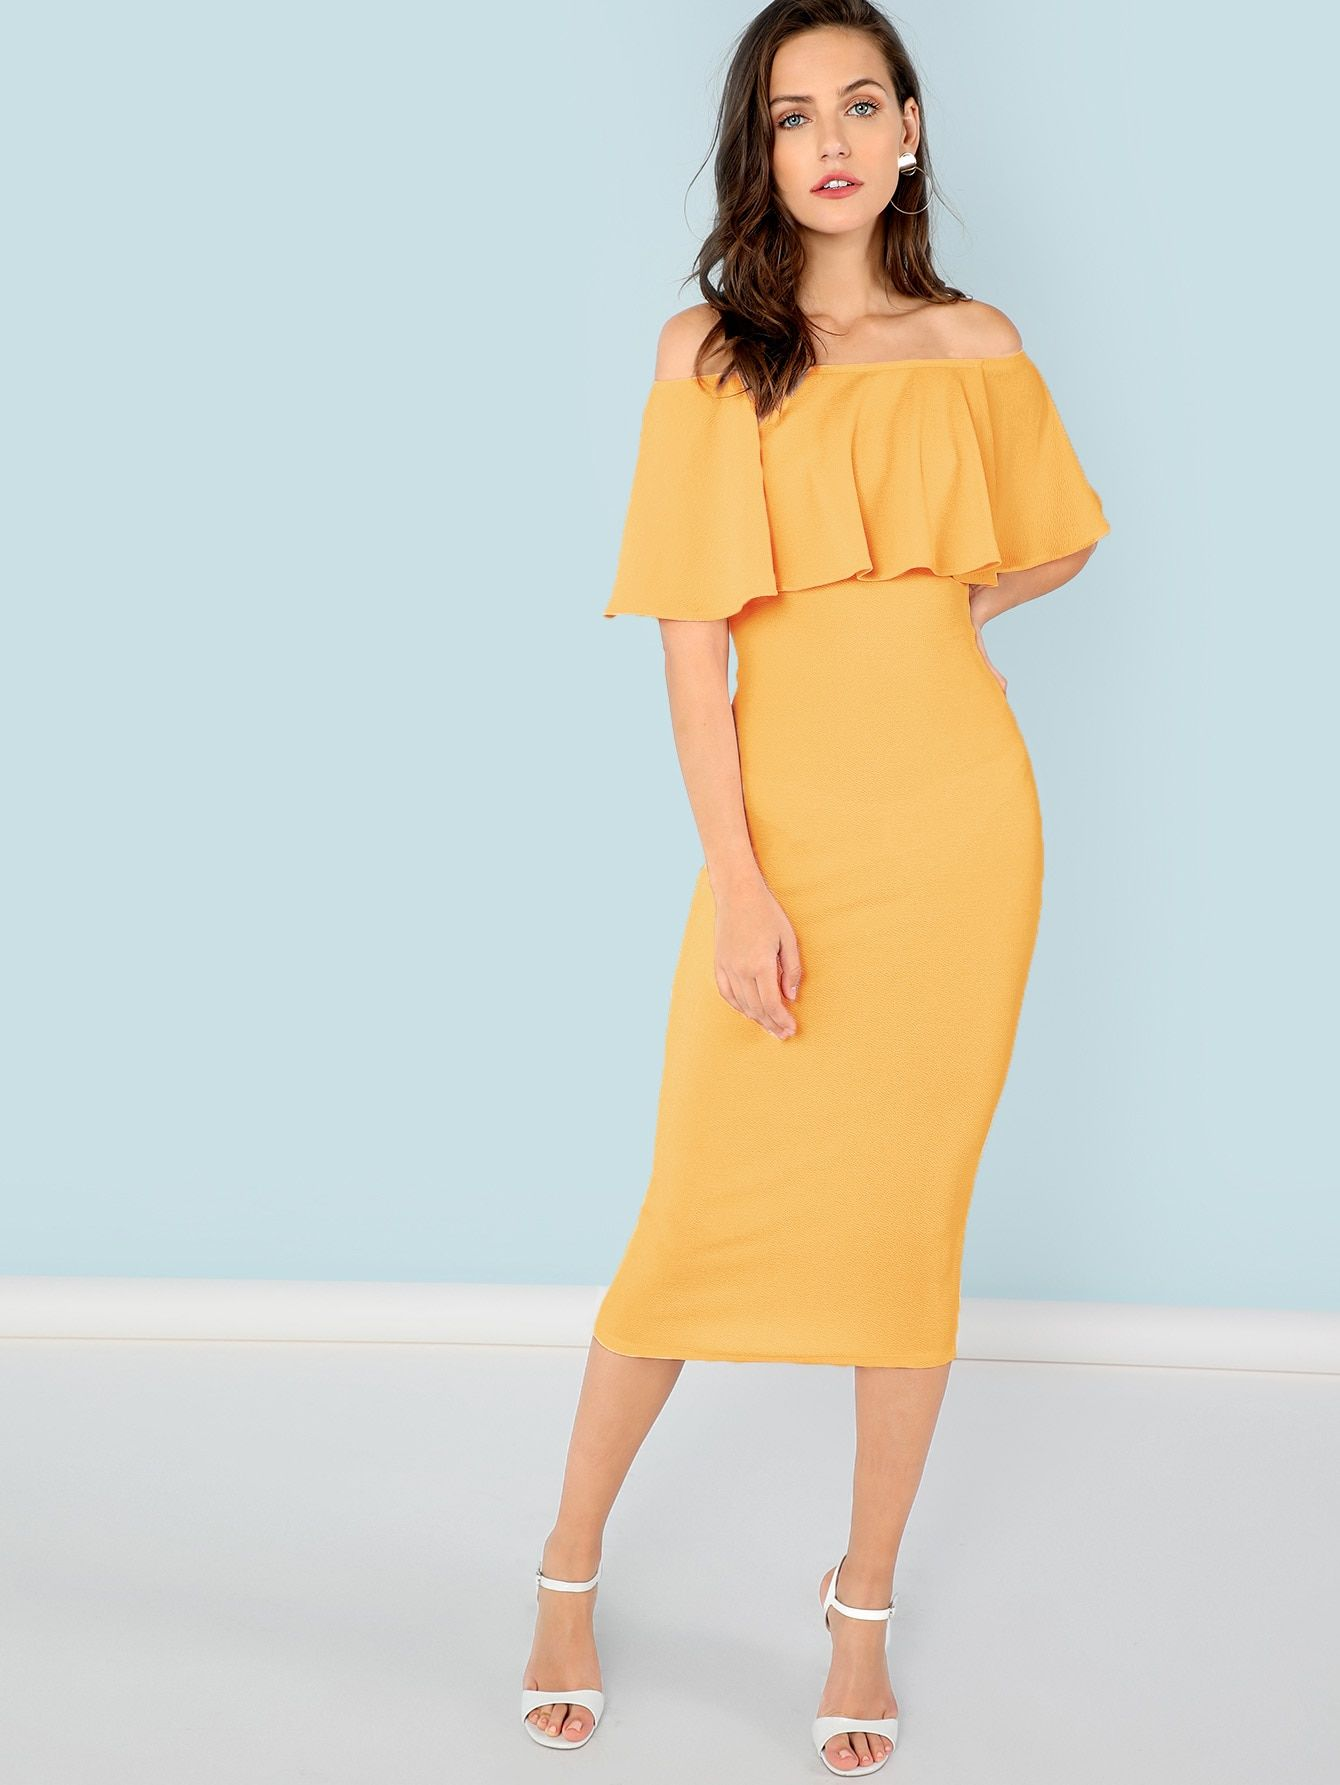 154a078a87 Women Elegant Pencil Plain Bodycon Off the Shoulder Half Sleeve Natural  Yellow Midi Length Flounce Foldover